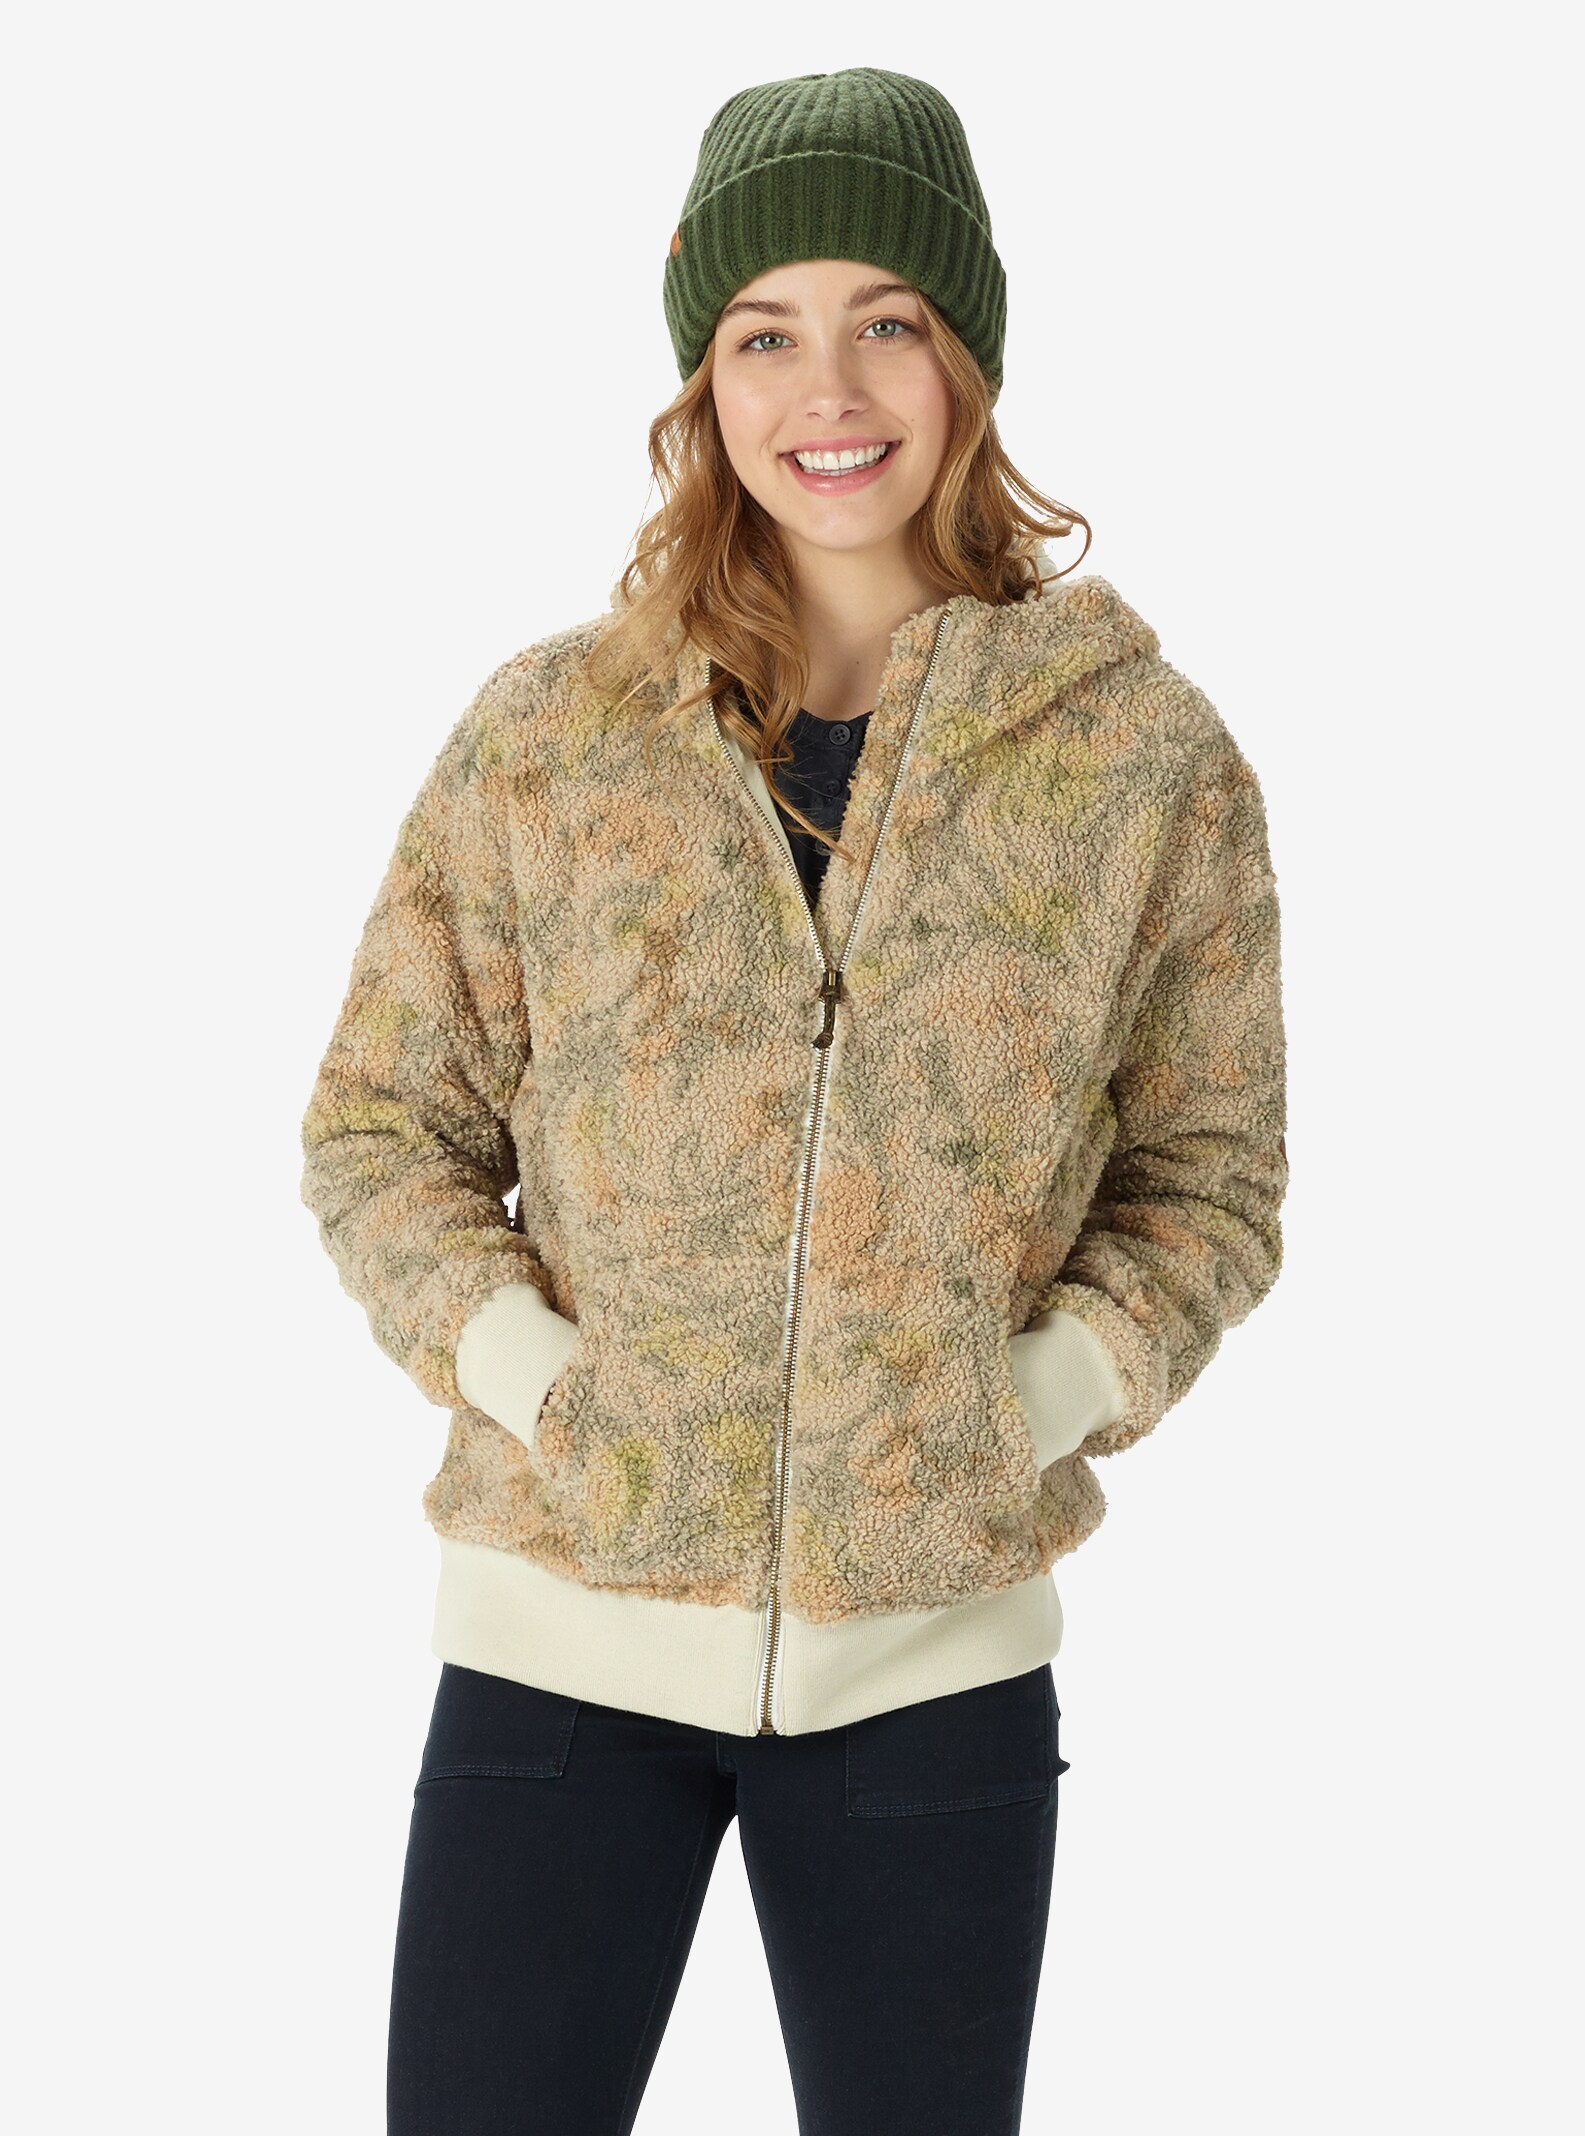 Women's Burton Lynx Full-Zip Fleece shown in Tapestry Camo